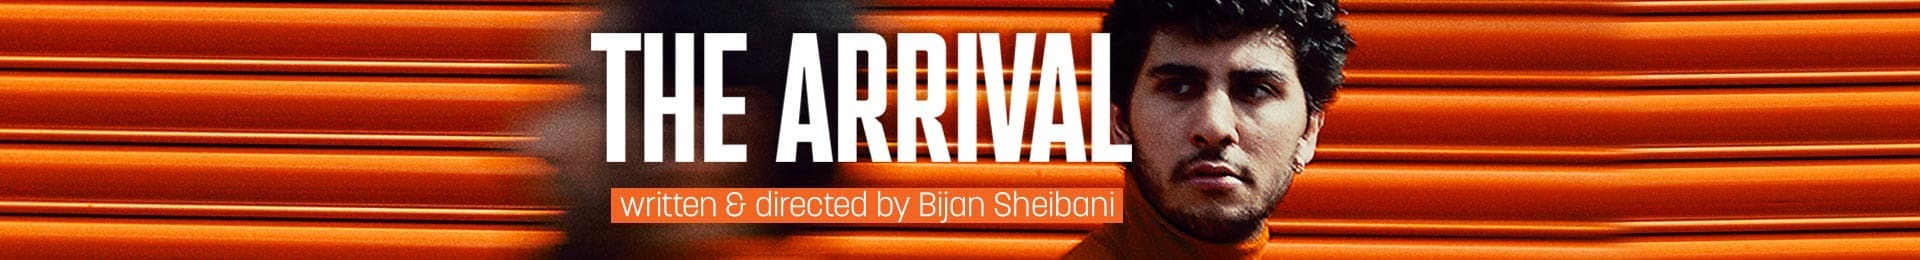 The Arrival banner image